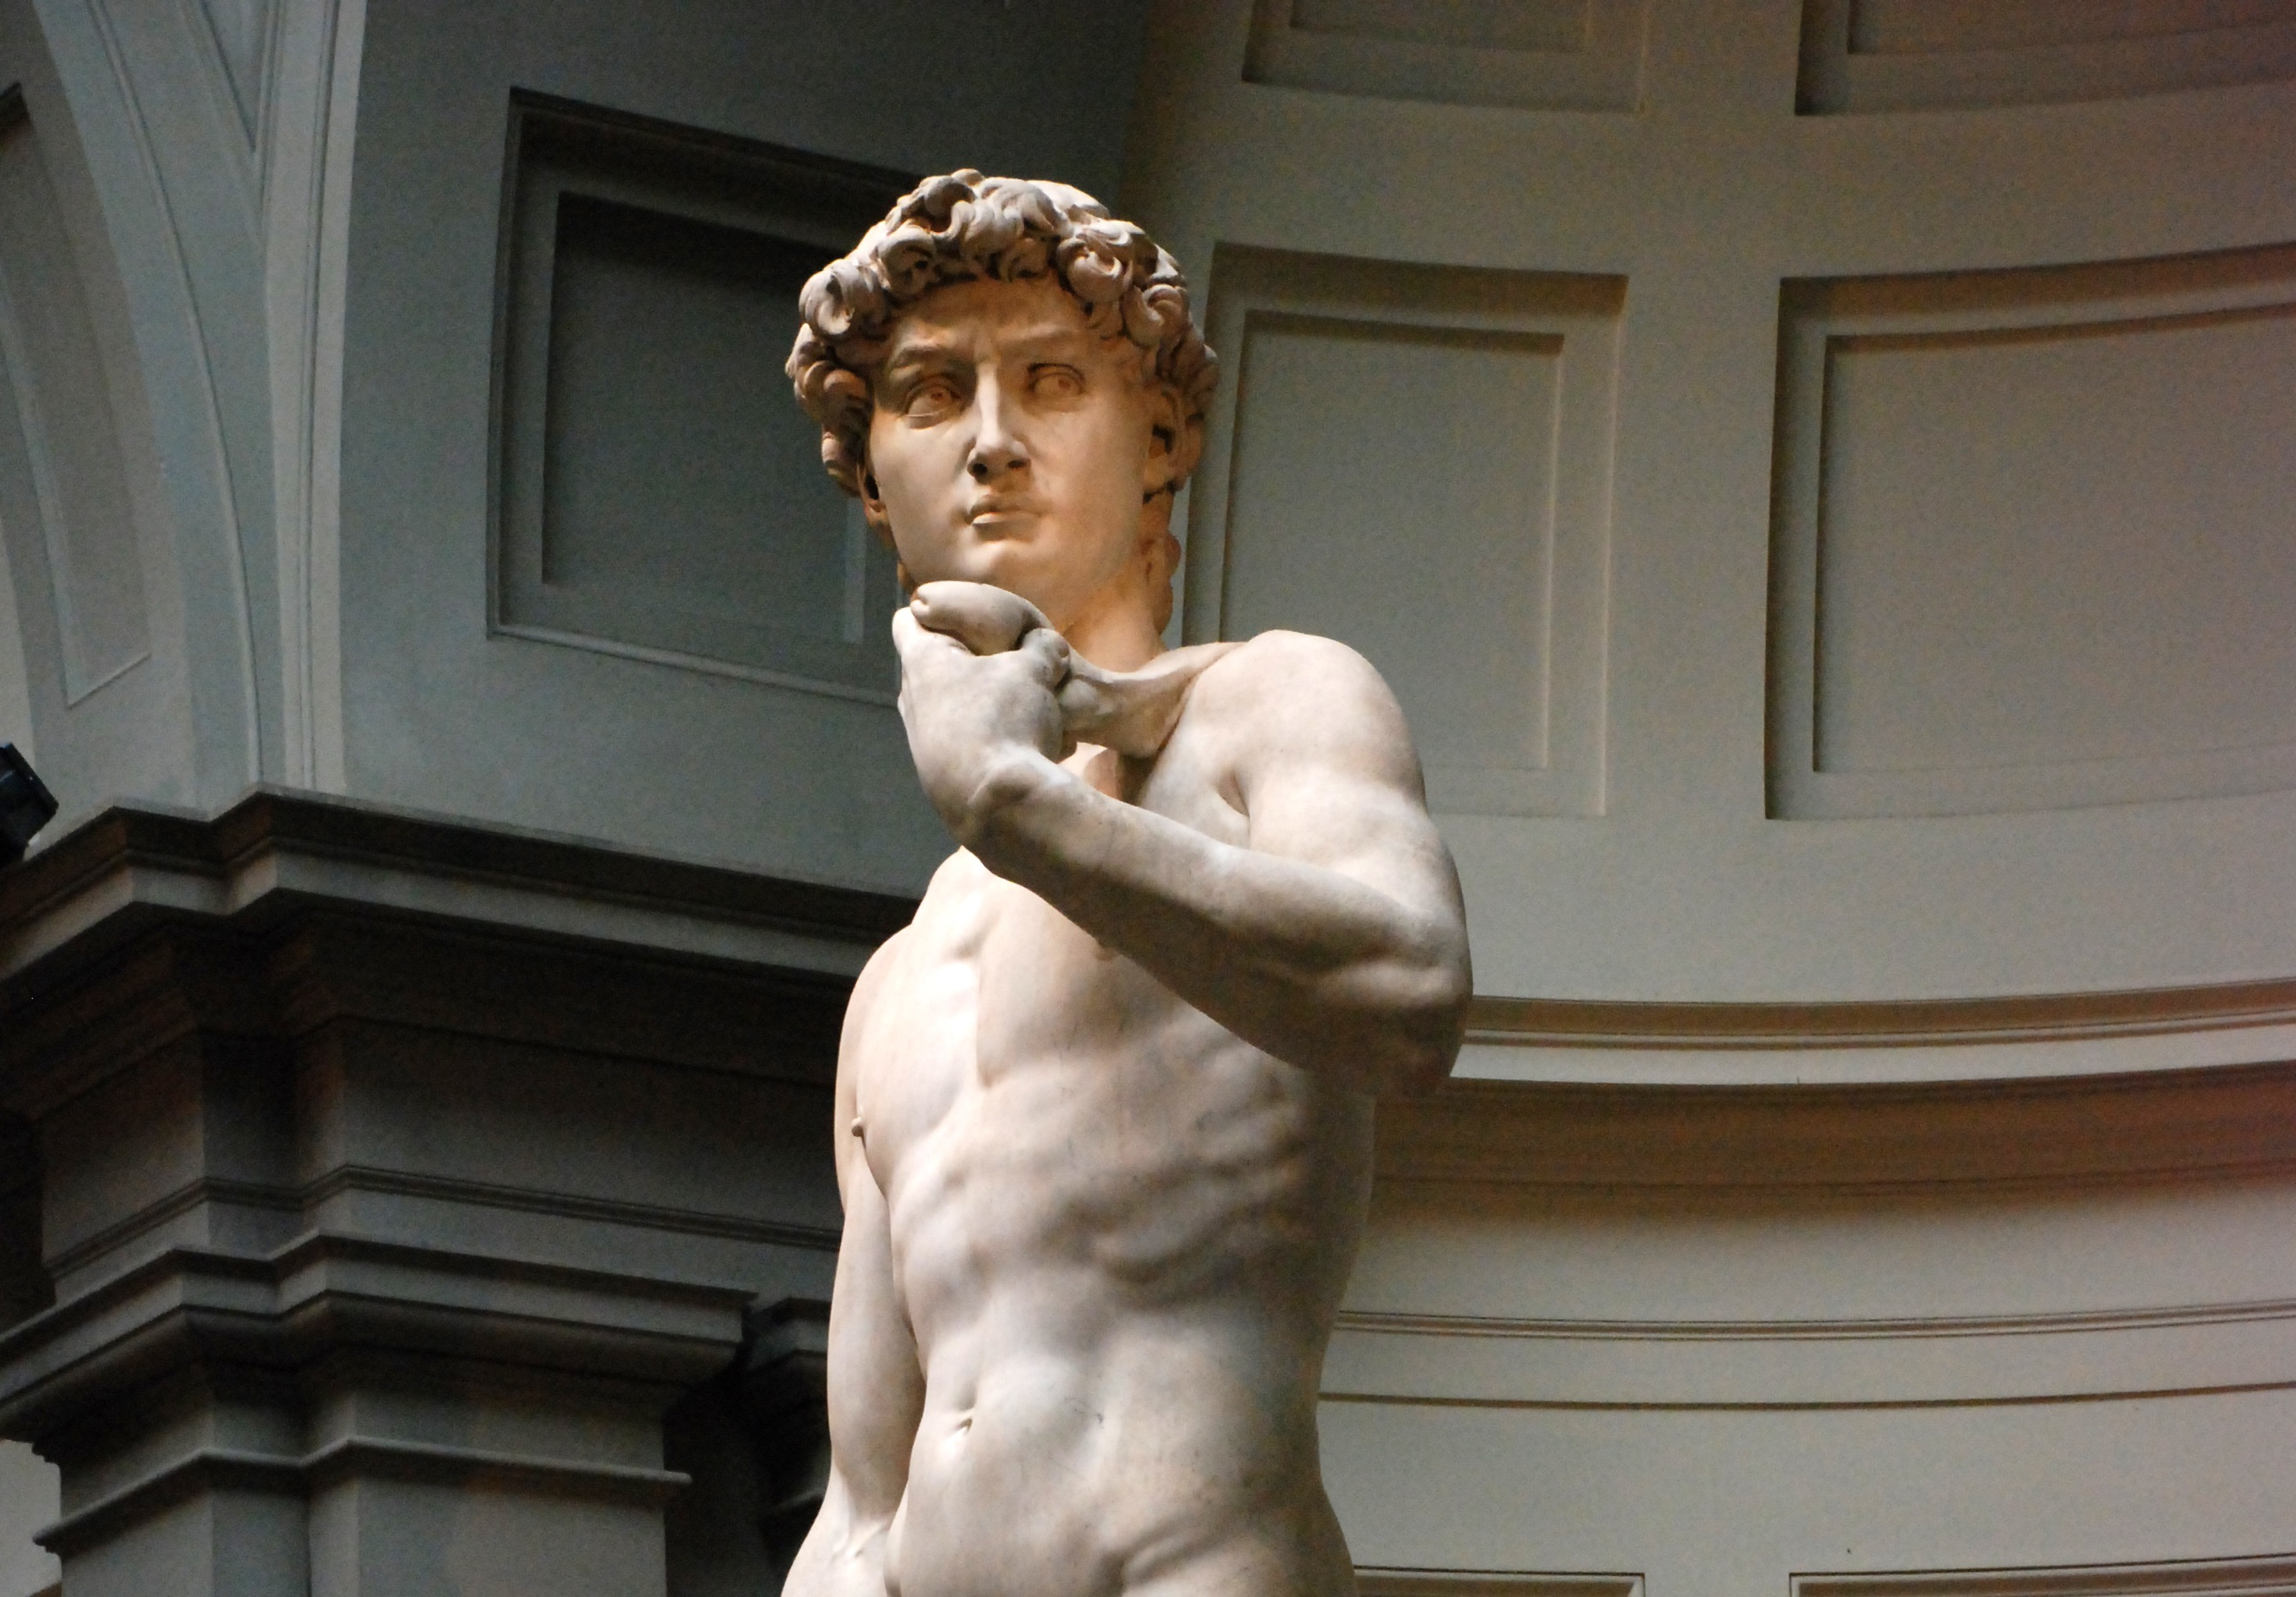 Michelangelo chose to depict David in the moment before he slayed the giant. Meant to show that David was determined, courageous, and a bit fearful (as David would not know at this point if he would successfully defeat the giant), the marble forehead is tight with worry and concentration. (Image via Wikipedia)